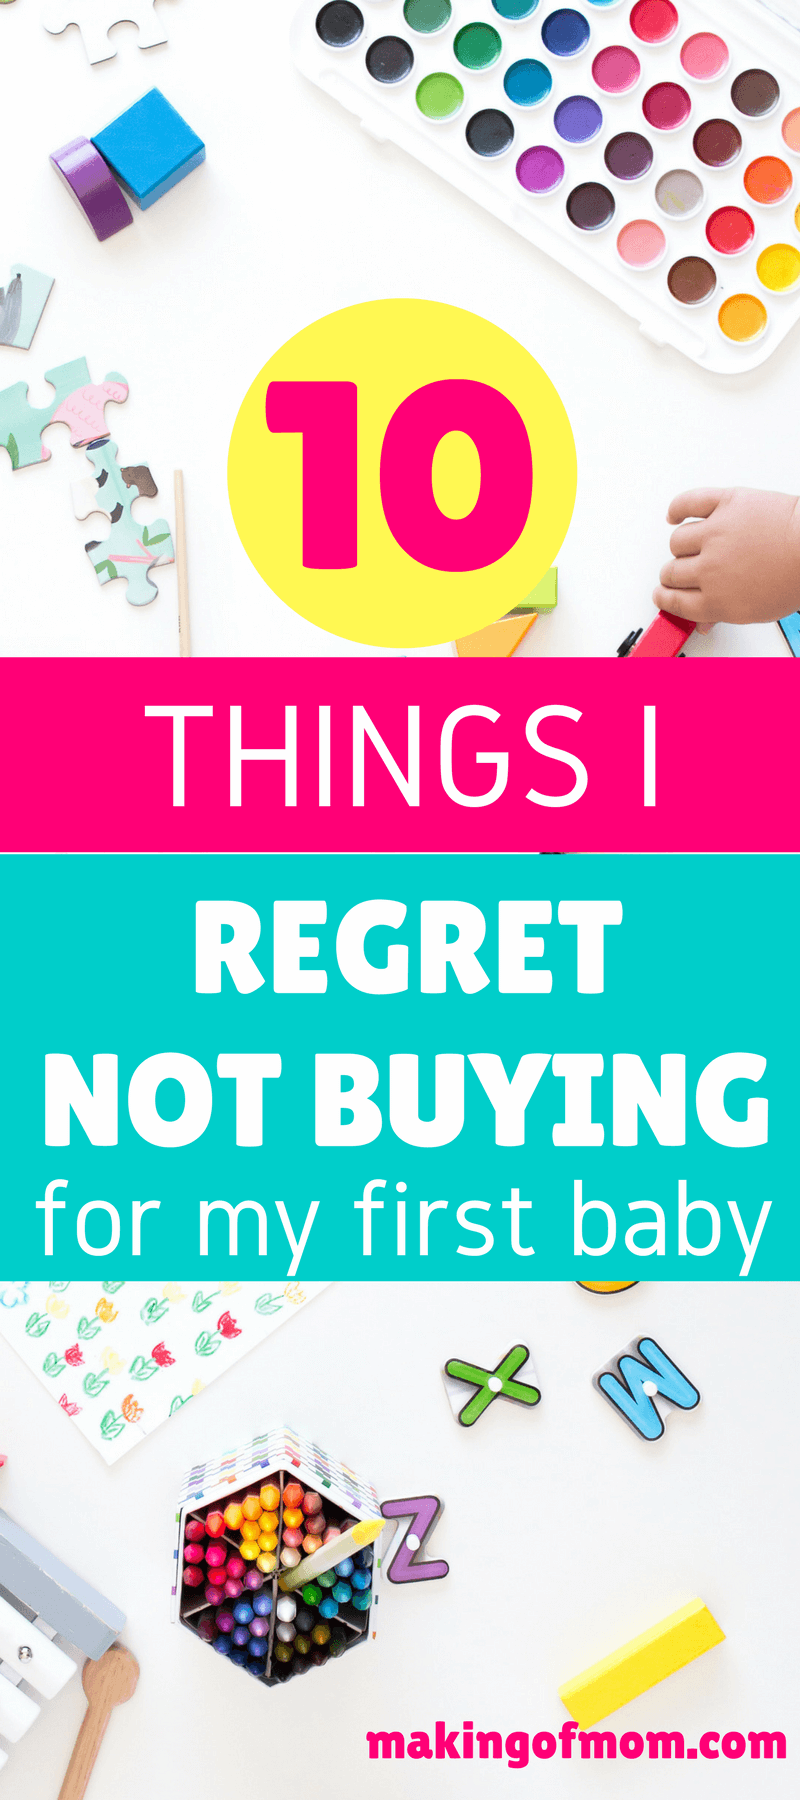 Pinterest is full of lists of what not to buy when it comes to baby gear. Well, here's my list of essentials I wished I had bought for my baby (my answer may surprise you). Are you on the fence about any of these items too? #babygear #babyessentials #newbaby